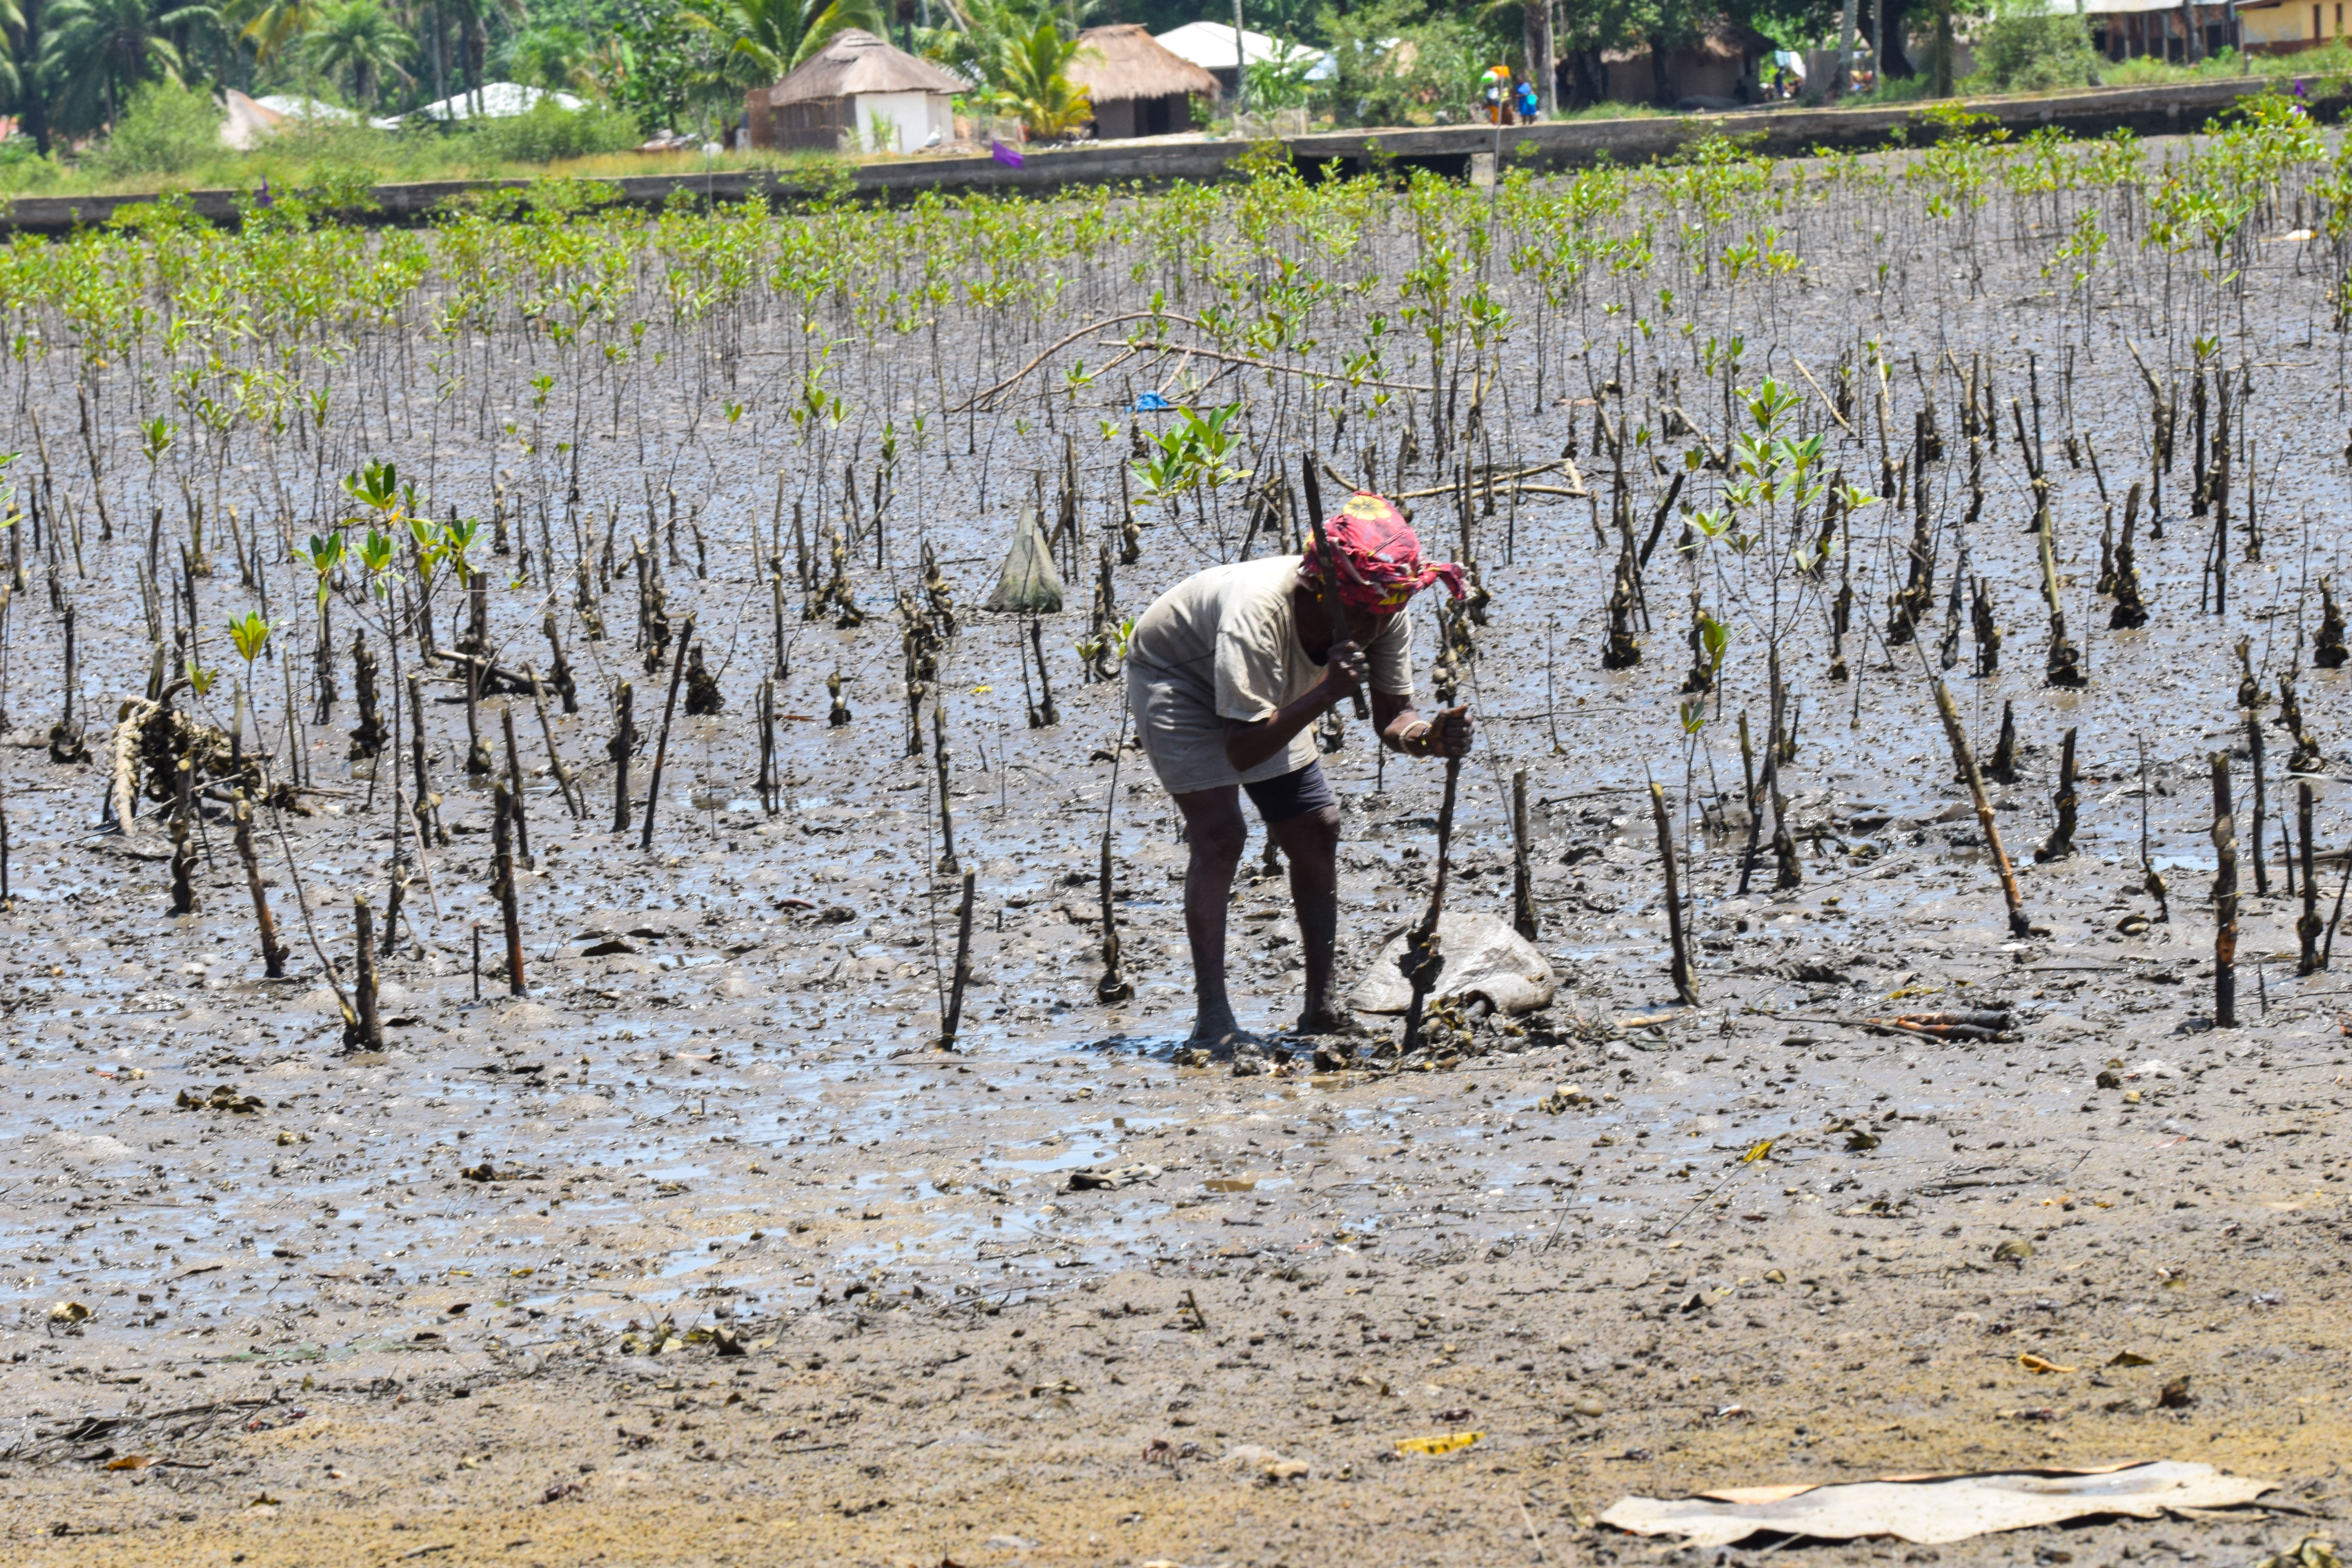 A person stands in a muddy area, planting young mangrove trees.